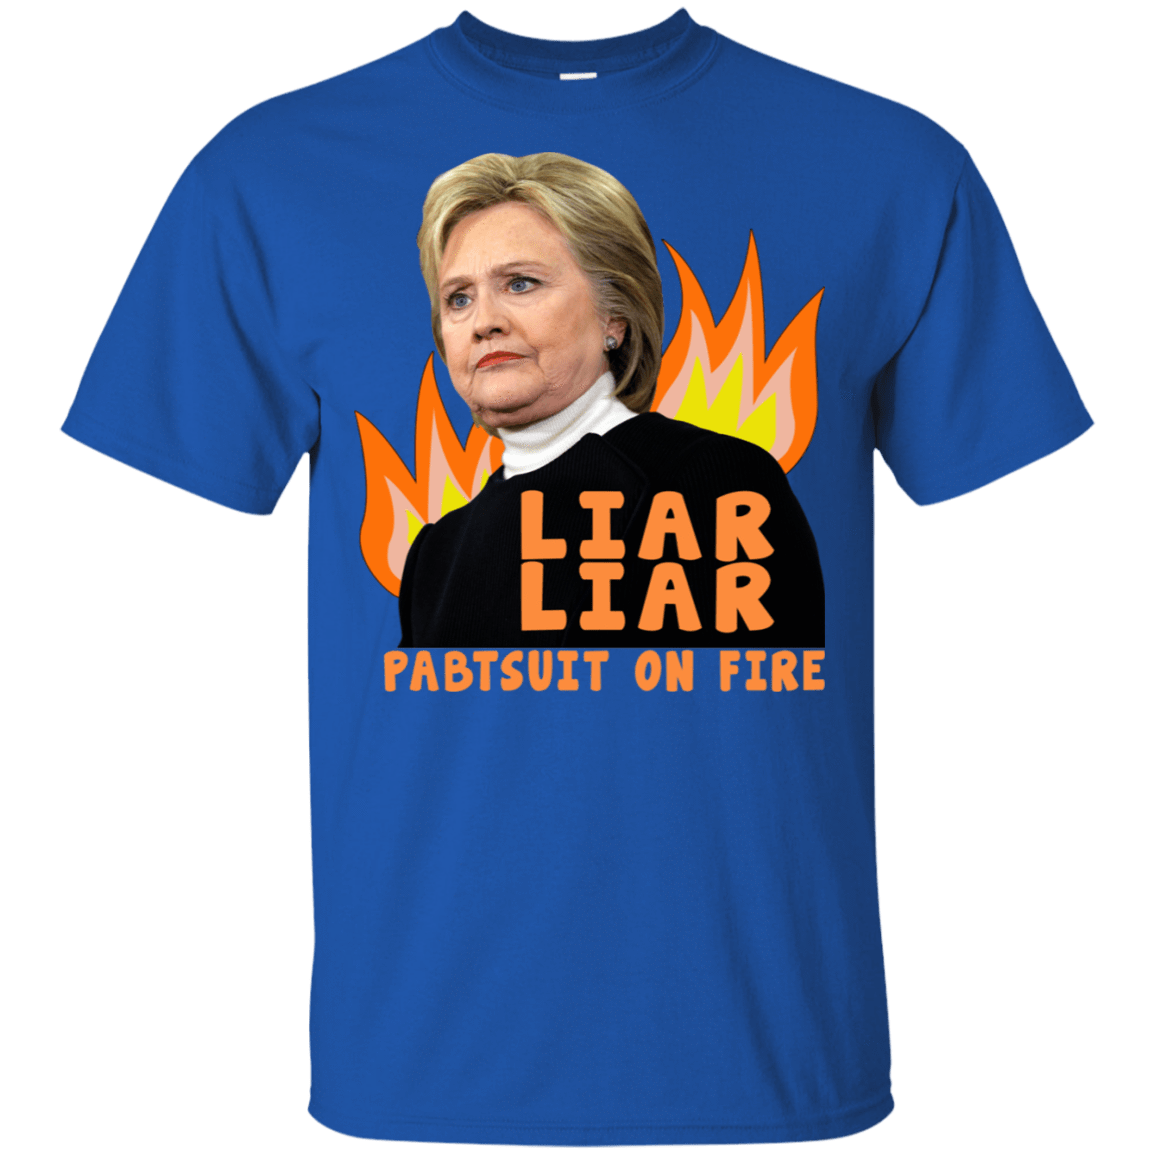 Hillary Clinton: Liar Liar Pantsuit On Fire 22-110-74096011-249 - Tee Ript